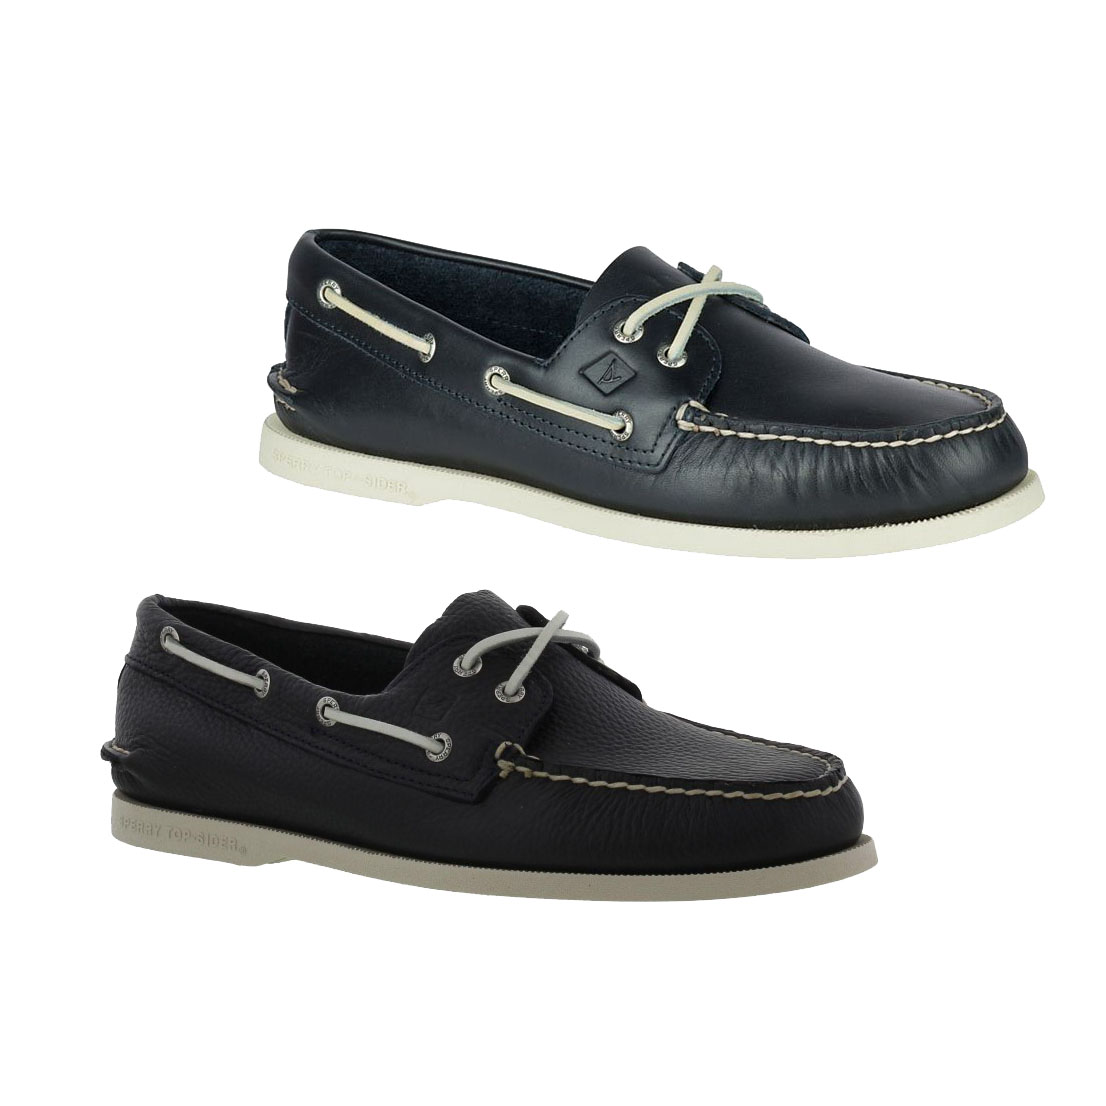 a76e5a3a33424 Details about Sperry Top Sider A/O Mens Classic 2 Eye Blue Leather Deck  Boat Shoe Size UK 8-11